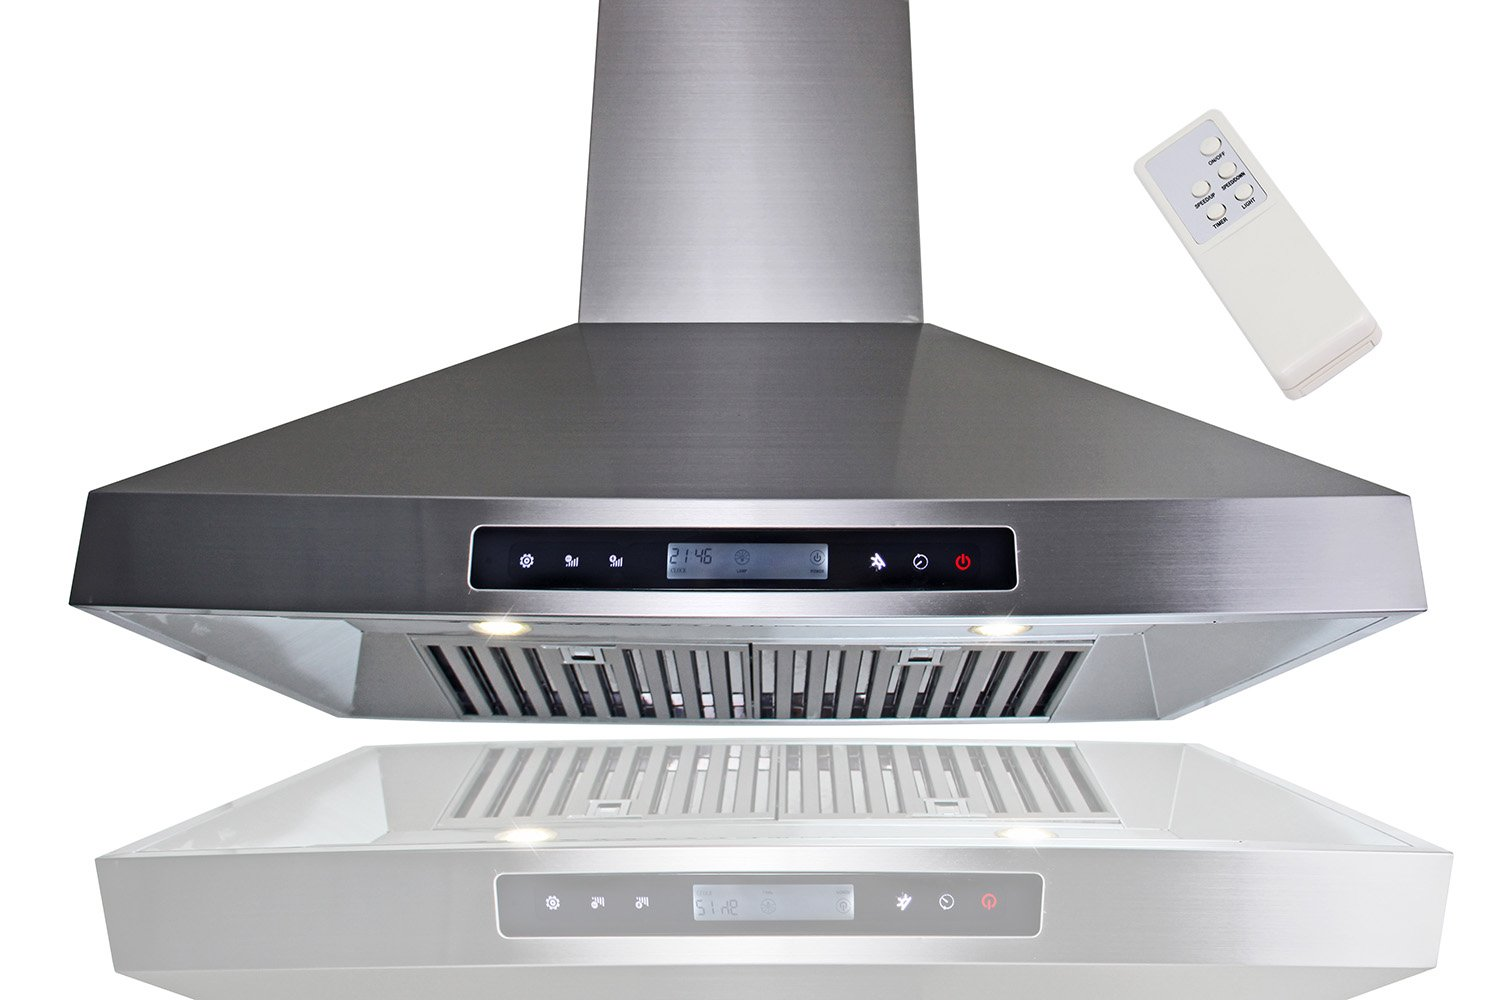 "Golden Vantage New European Style 30"" Kitchen Island Mount Stainless Steel Range Hood Vent w/ Remote Control at Sears.com"